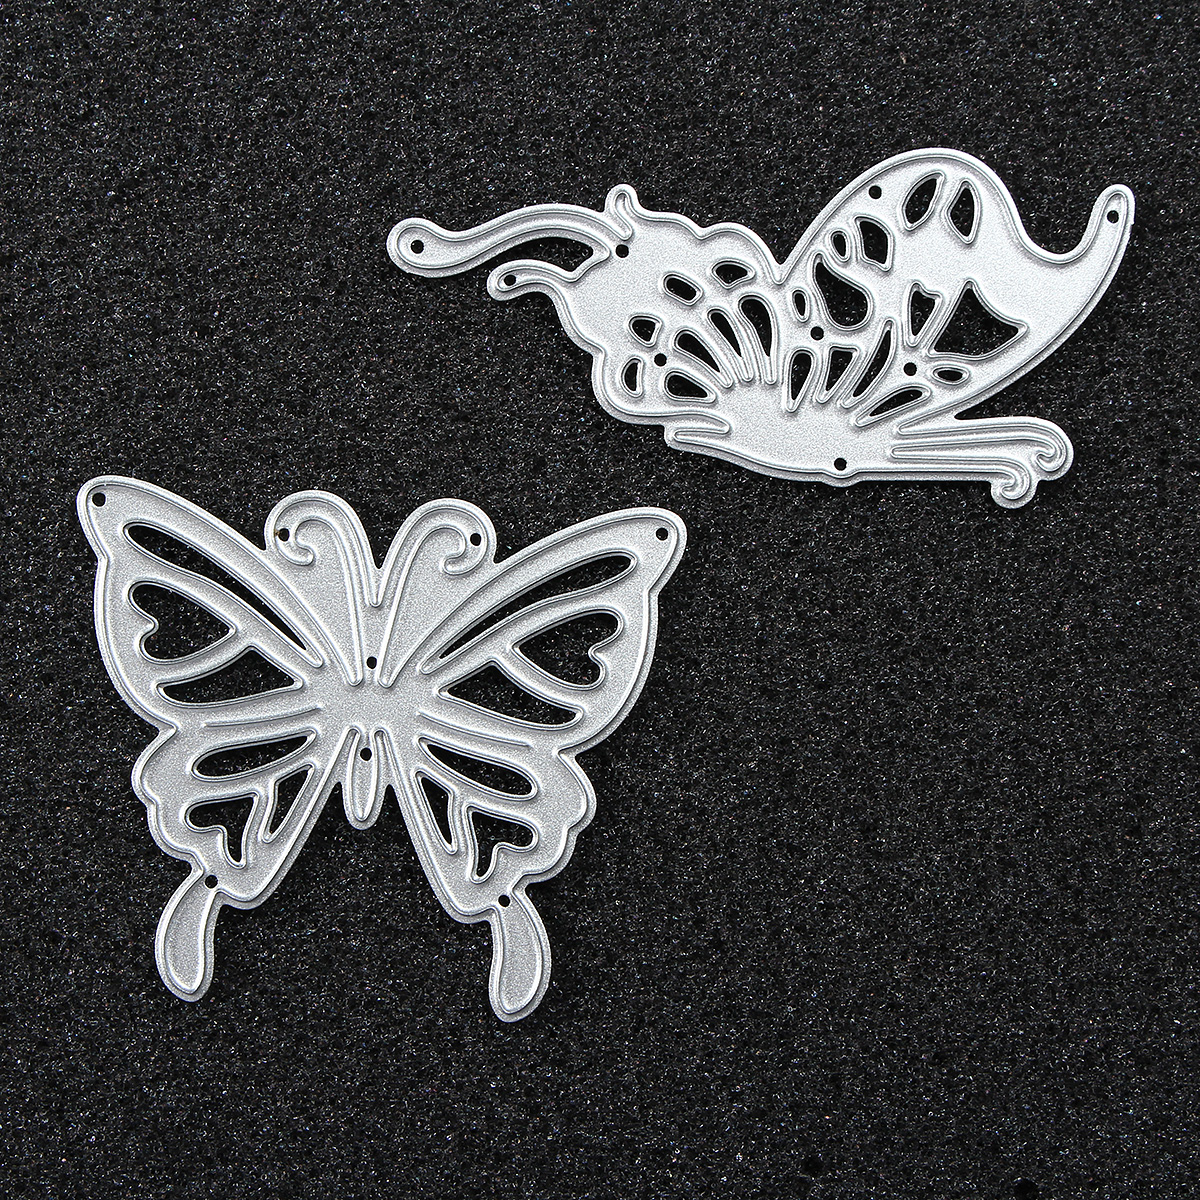 Butterfly Metal Cutting Dies Stencil Scrapbook Card Photo Album Paper Embossing Craft